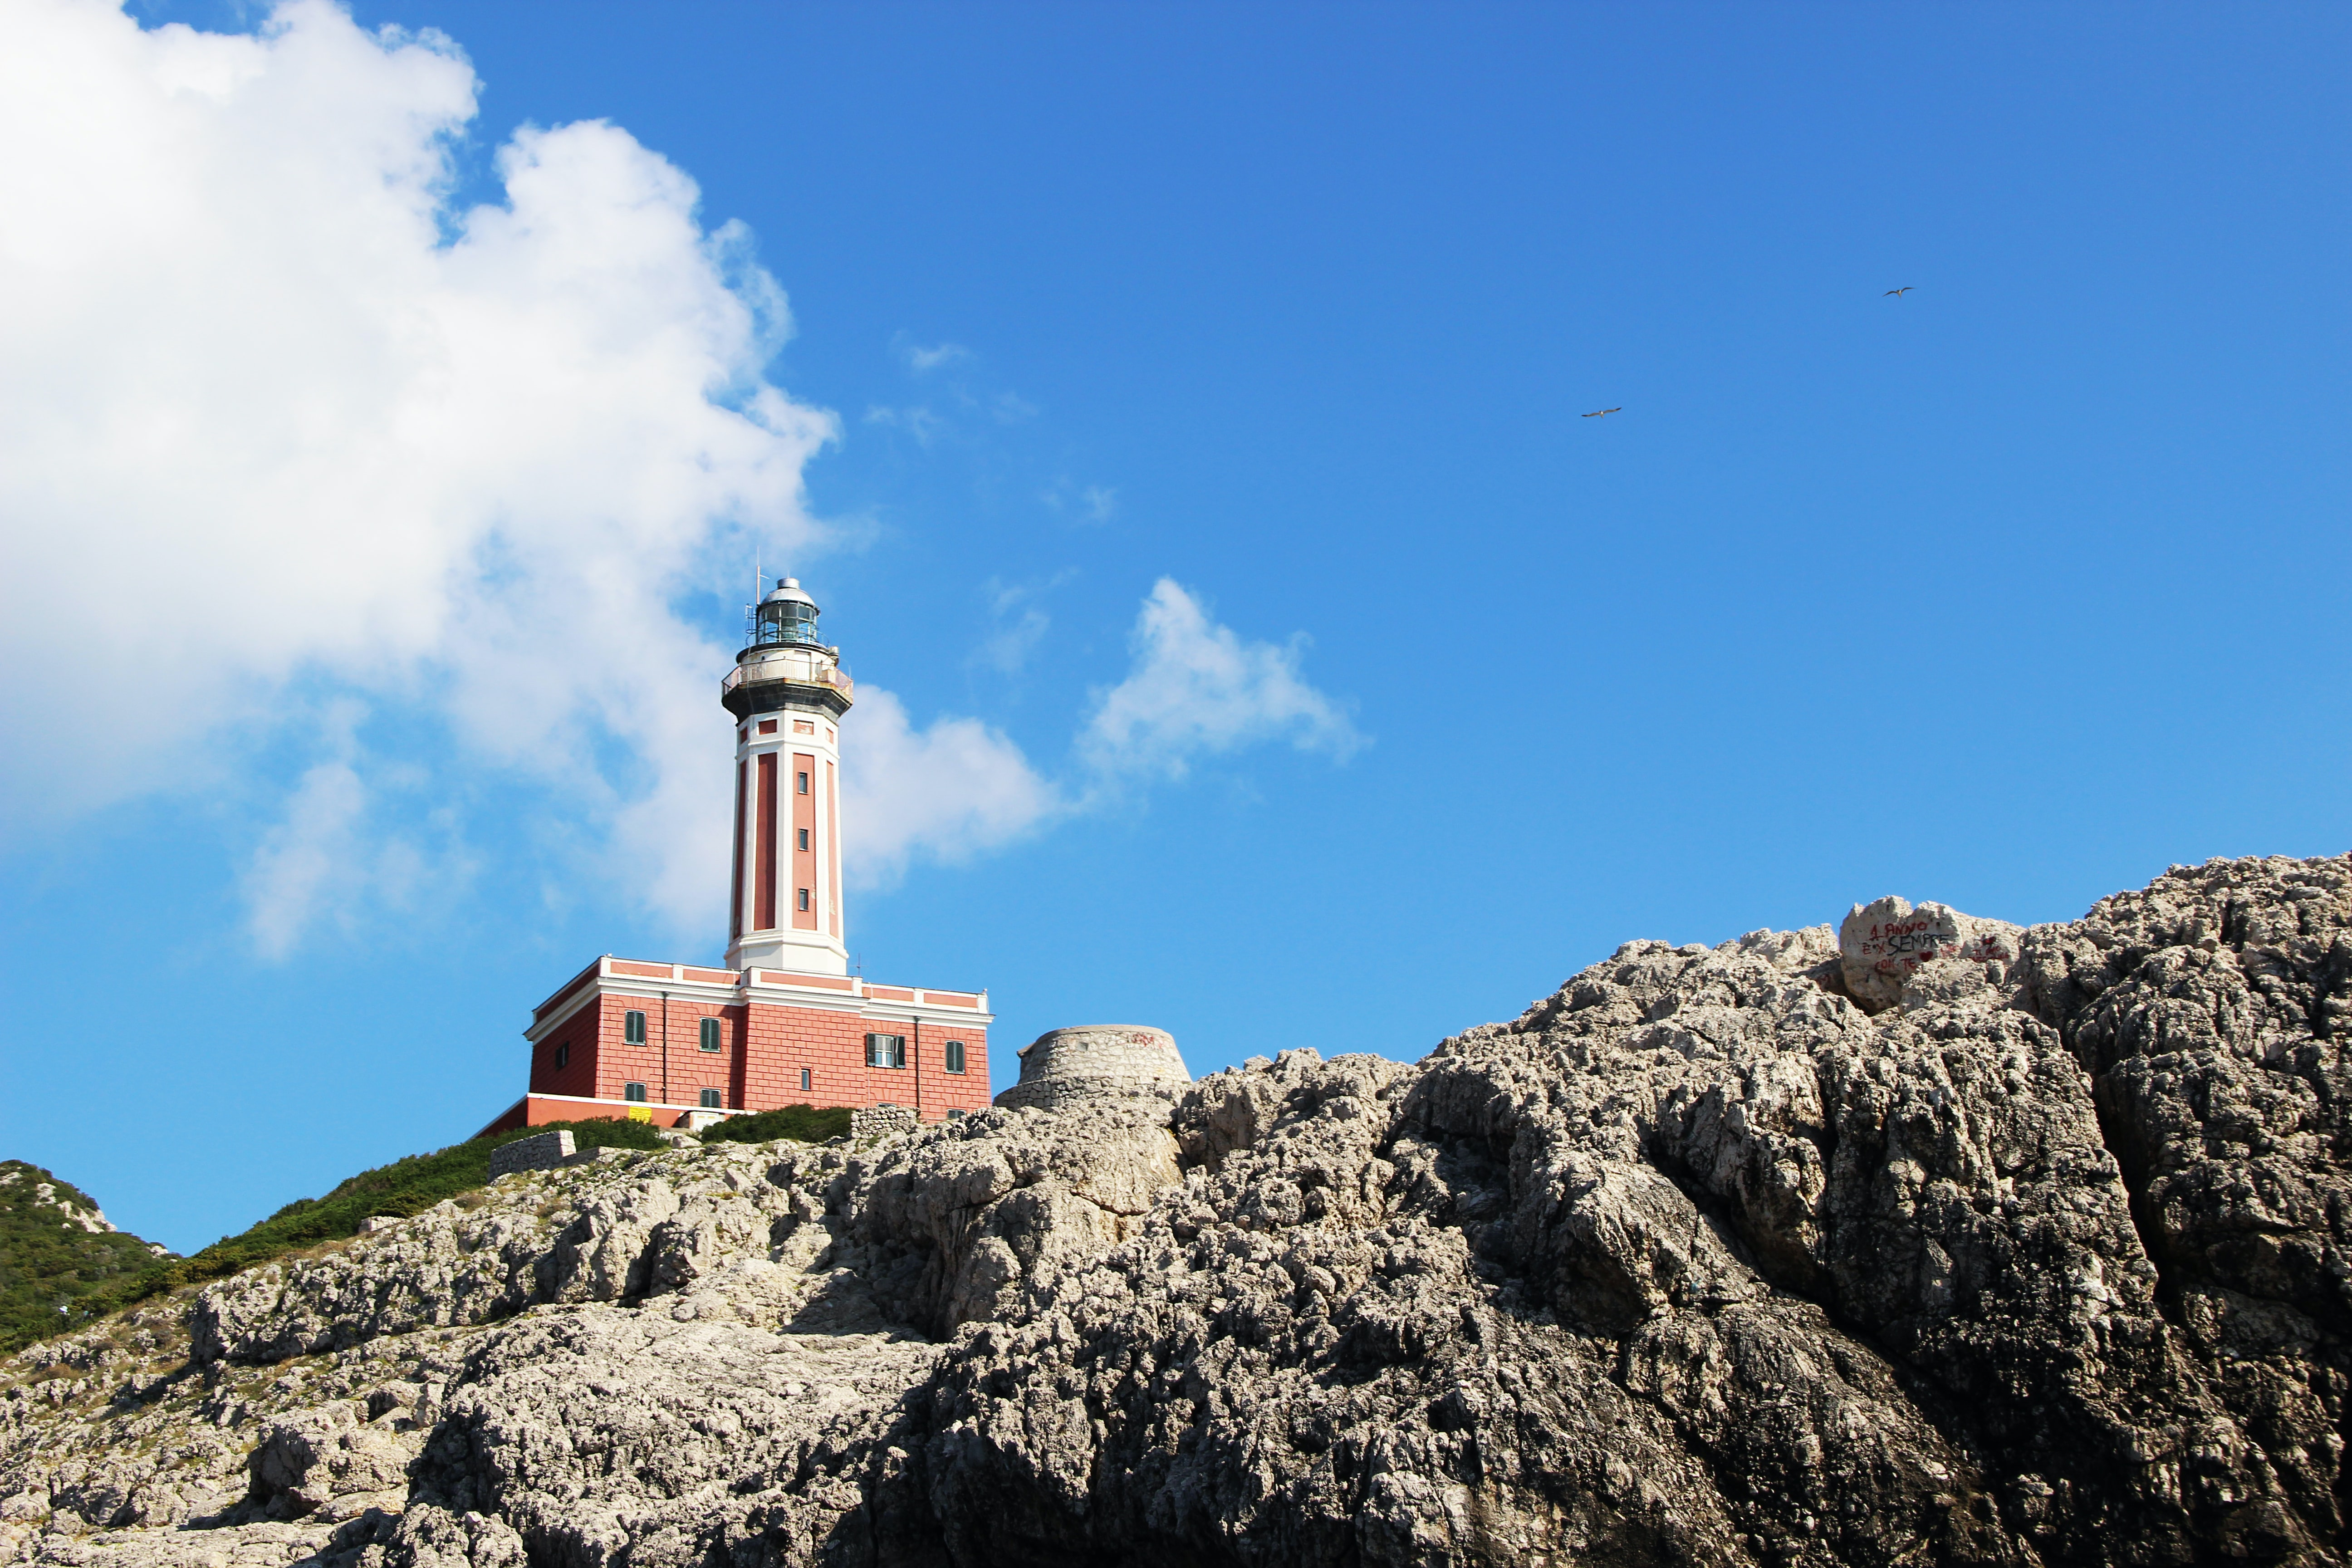 brown and white concrete lighthouse on rock formation during daytime